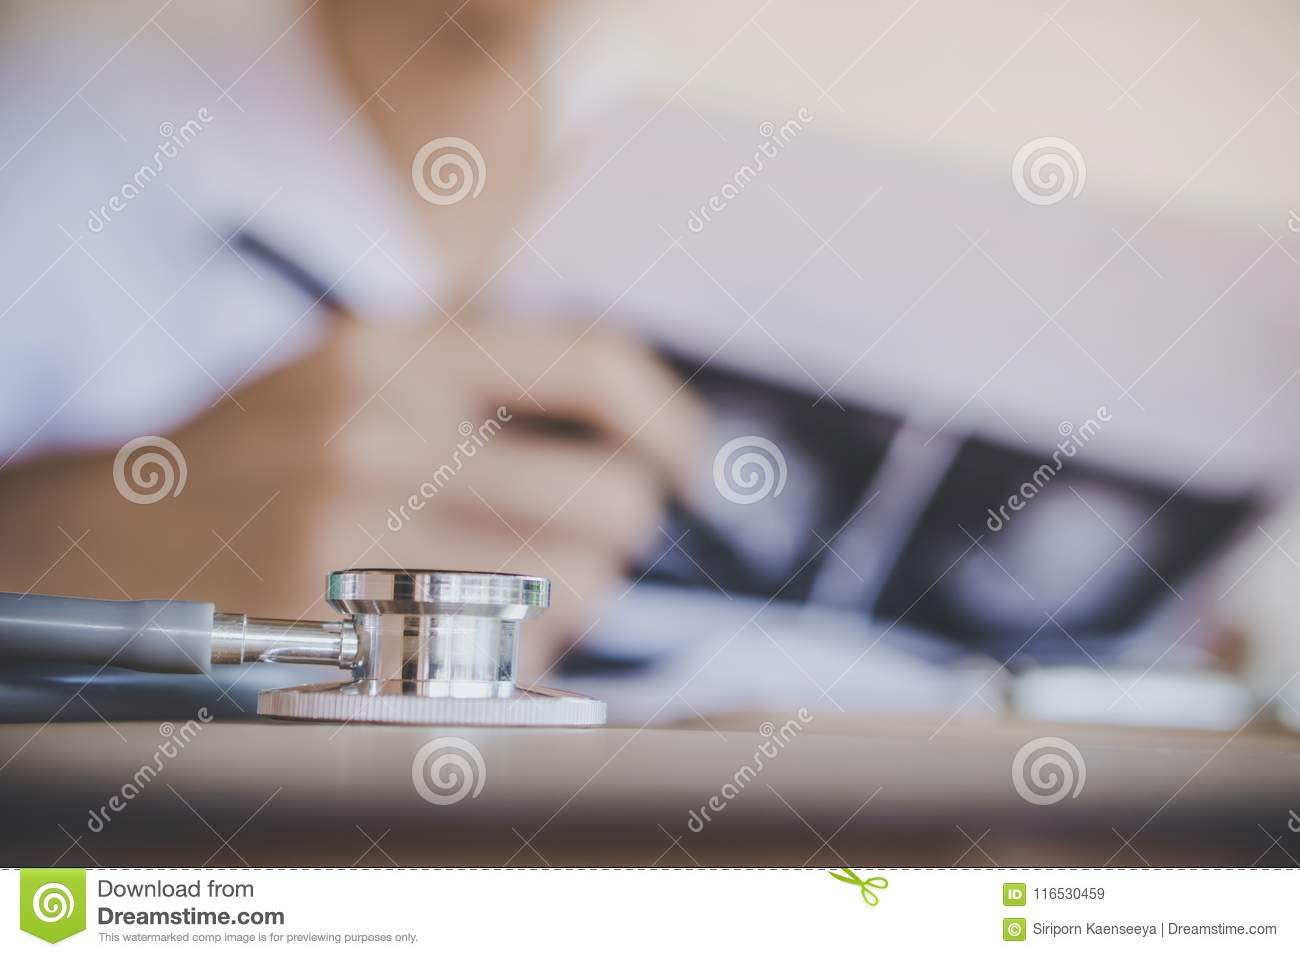 Stethoscope on desk with doctor working in office